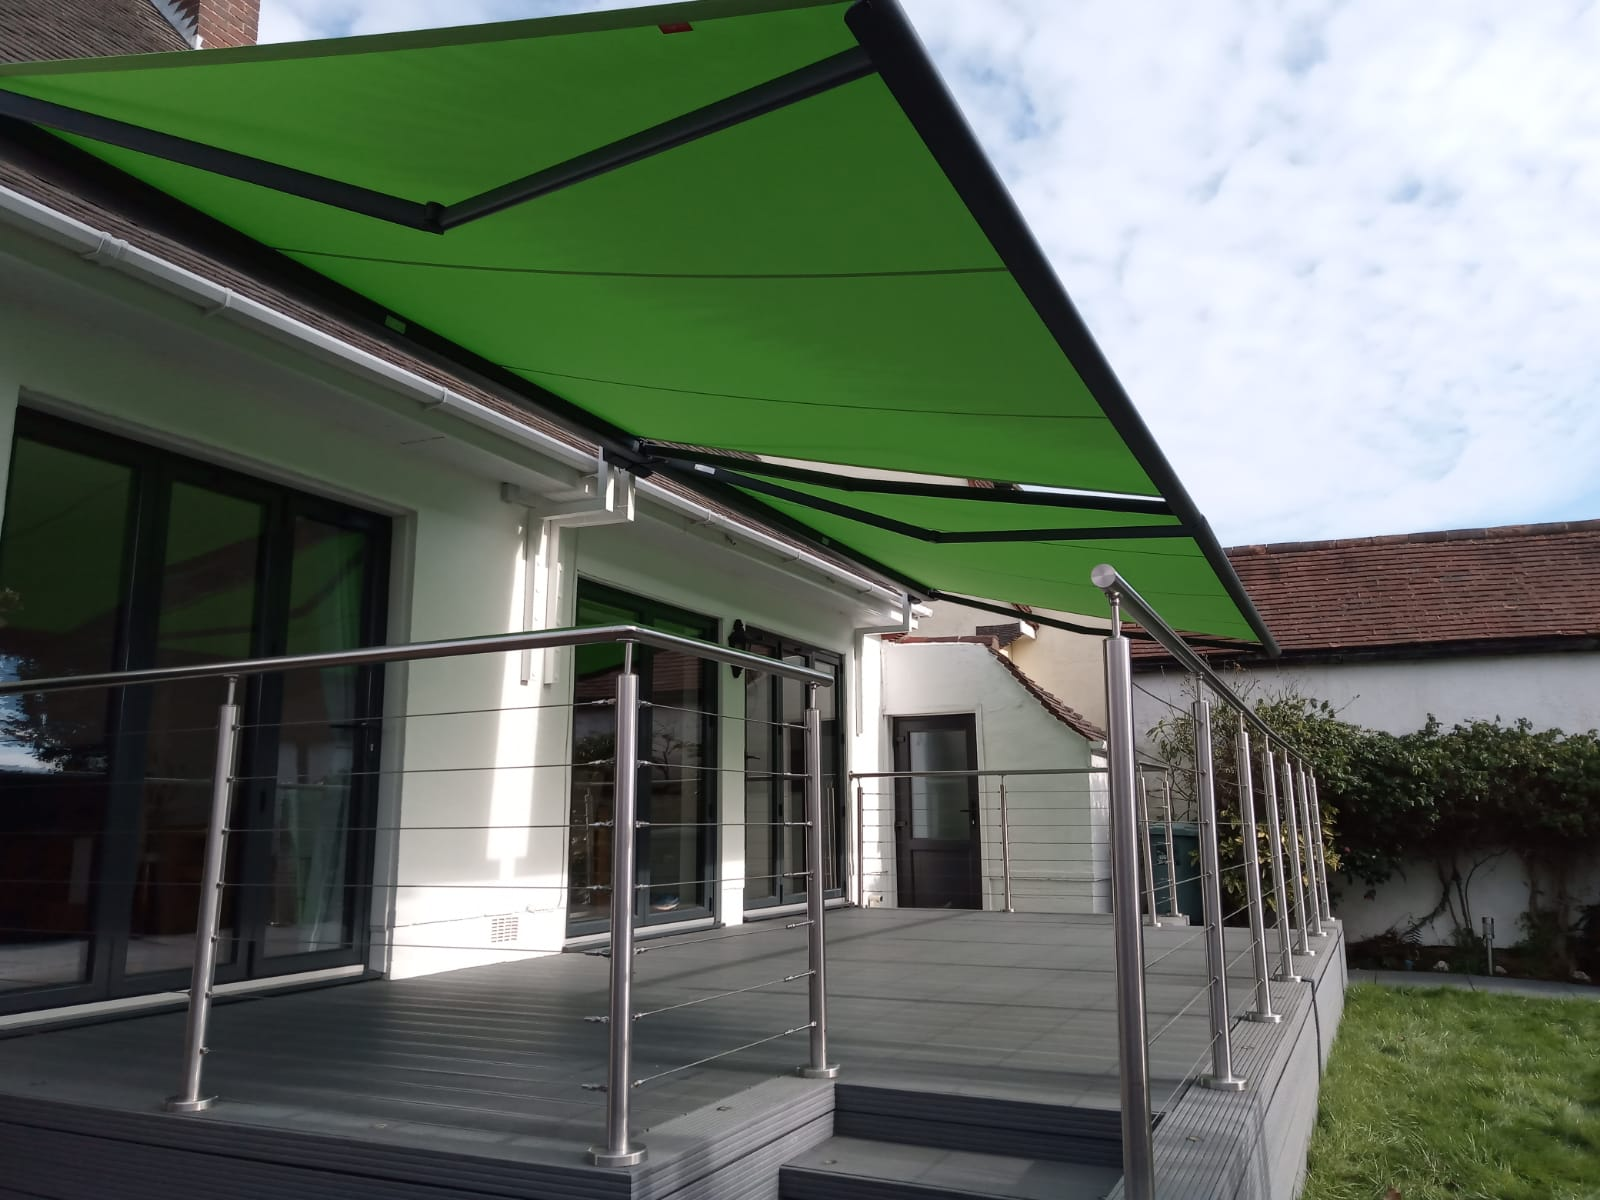 Modern Green Garden Awning Fitted by Awningsouth